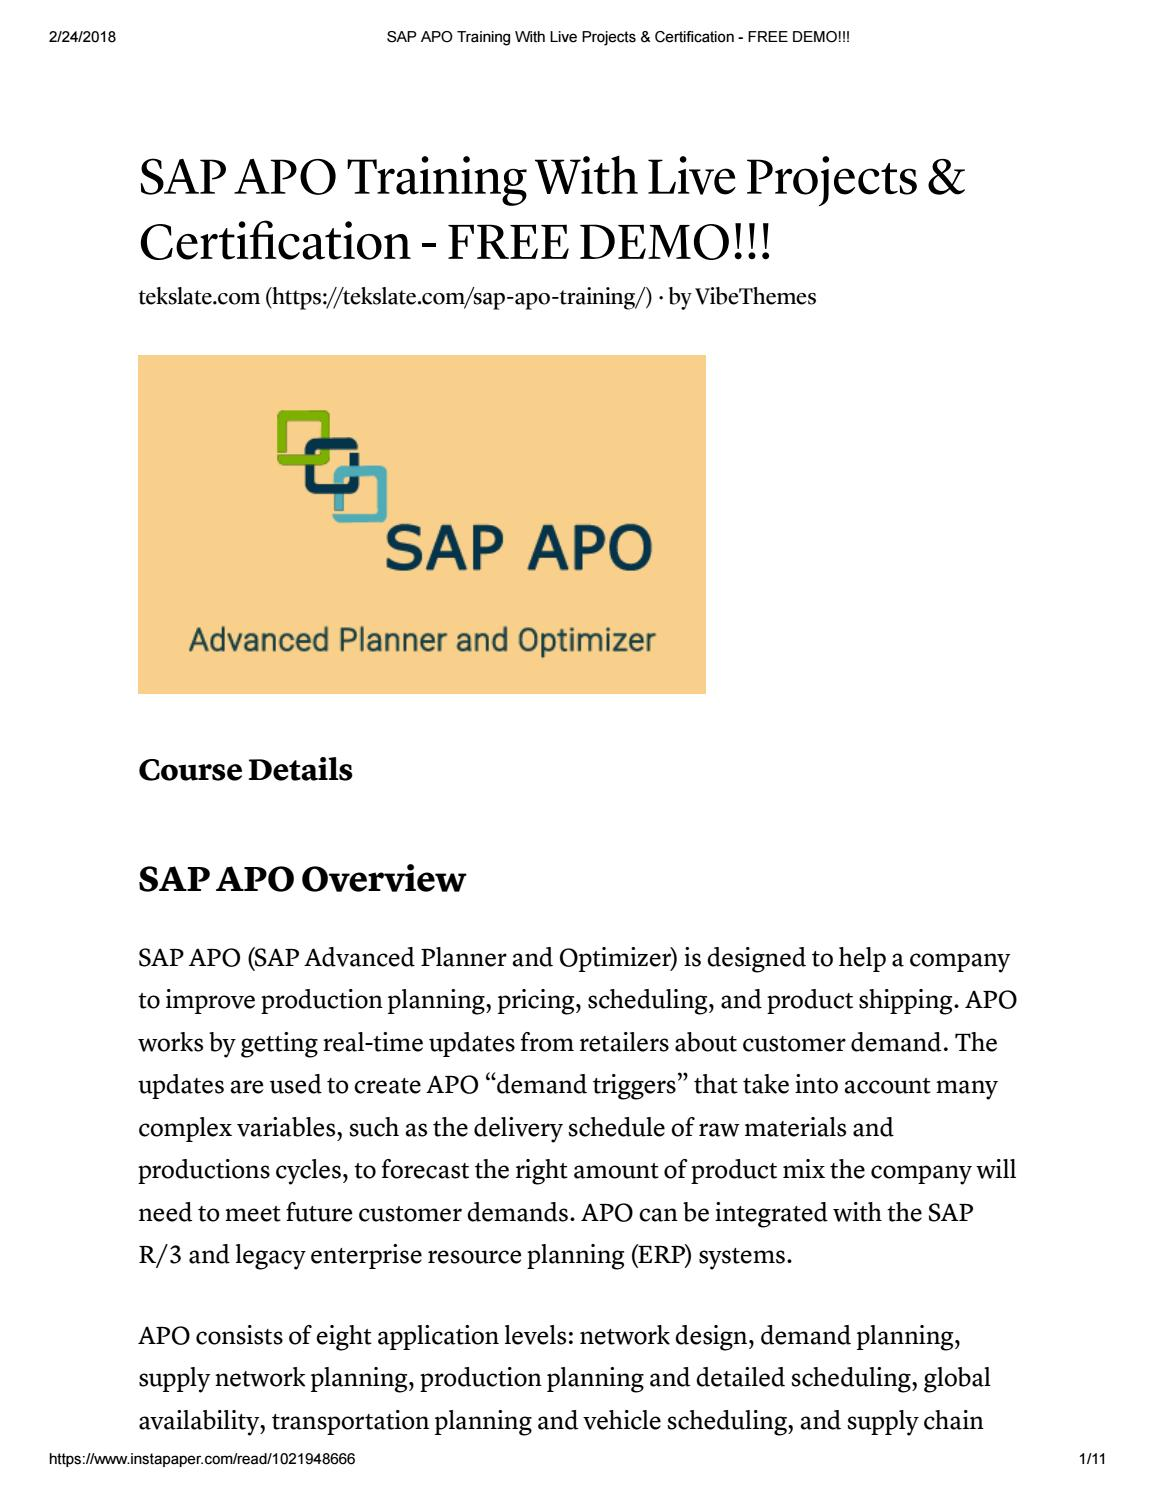 Sap apo training with live projects & certification free